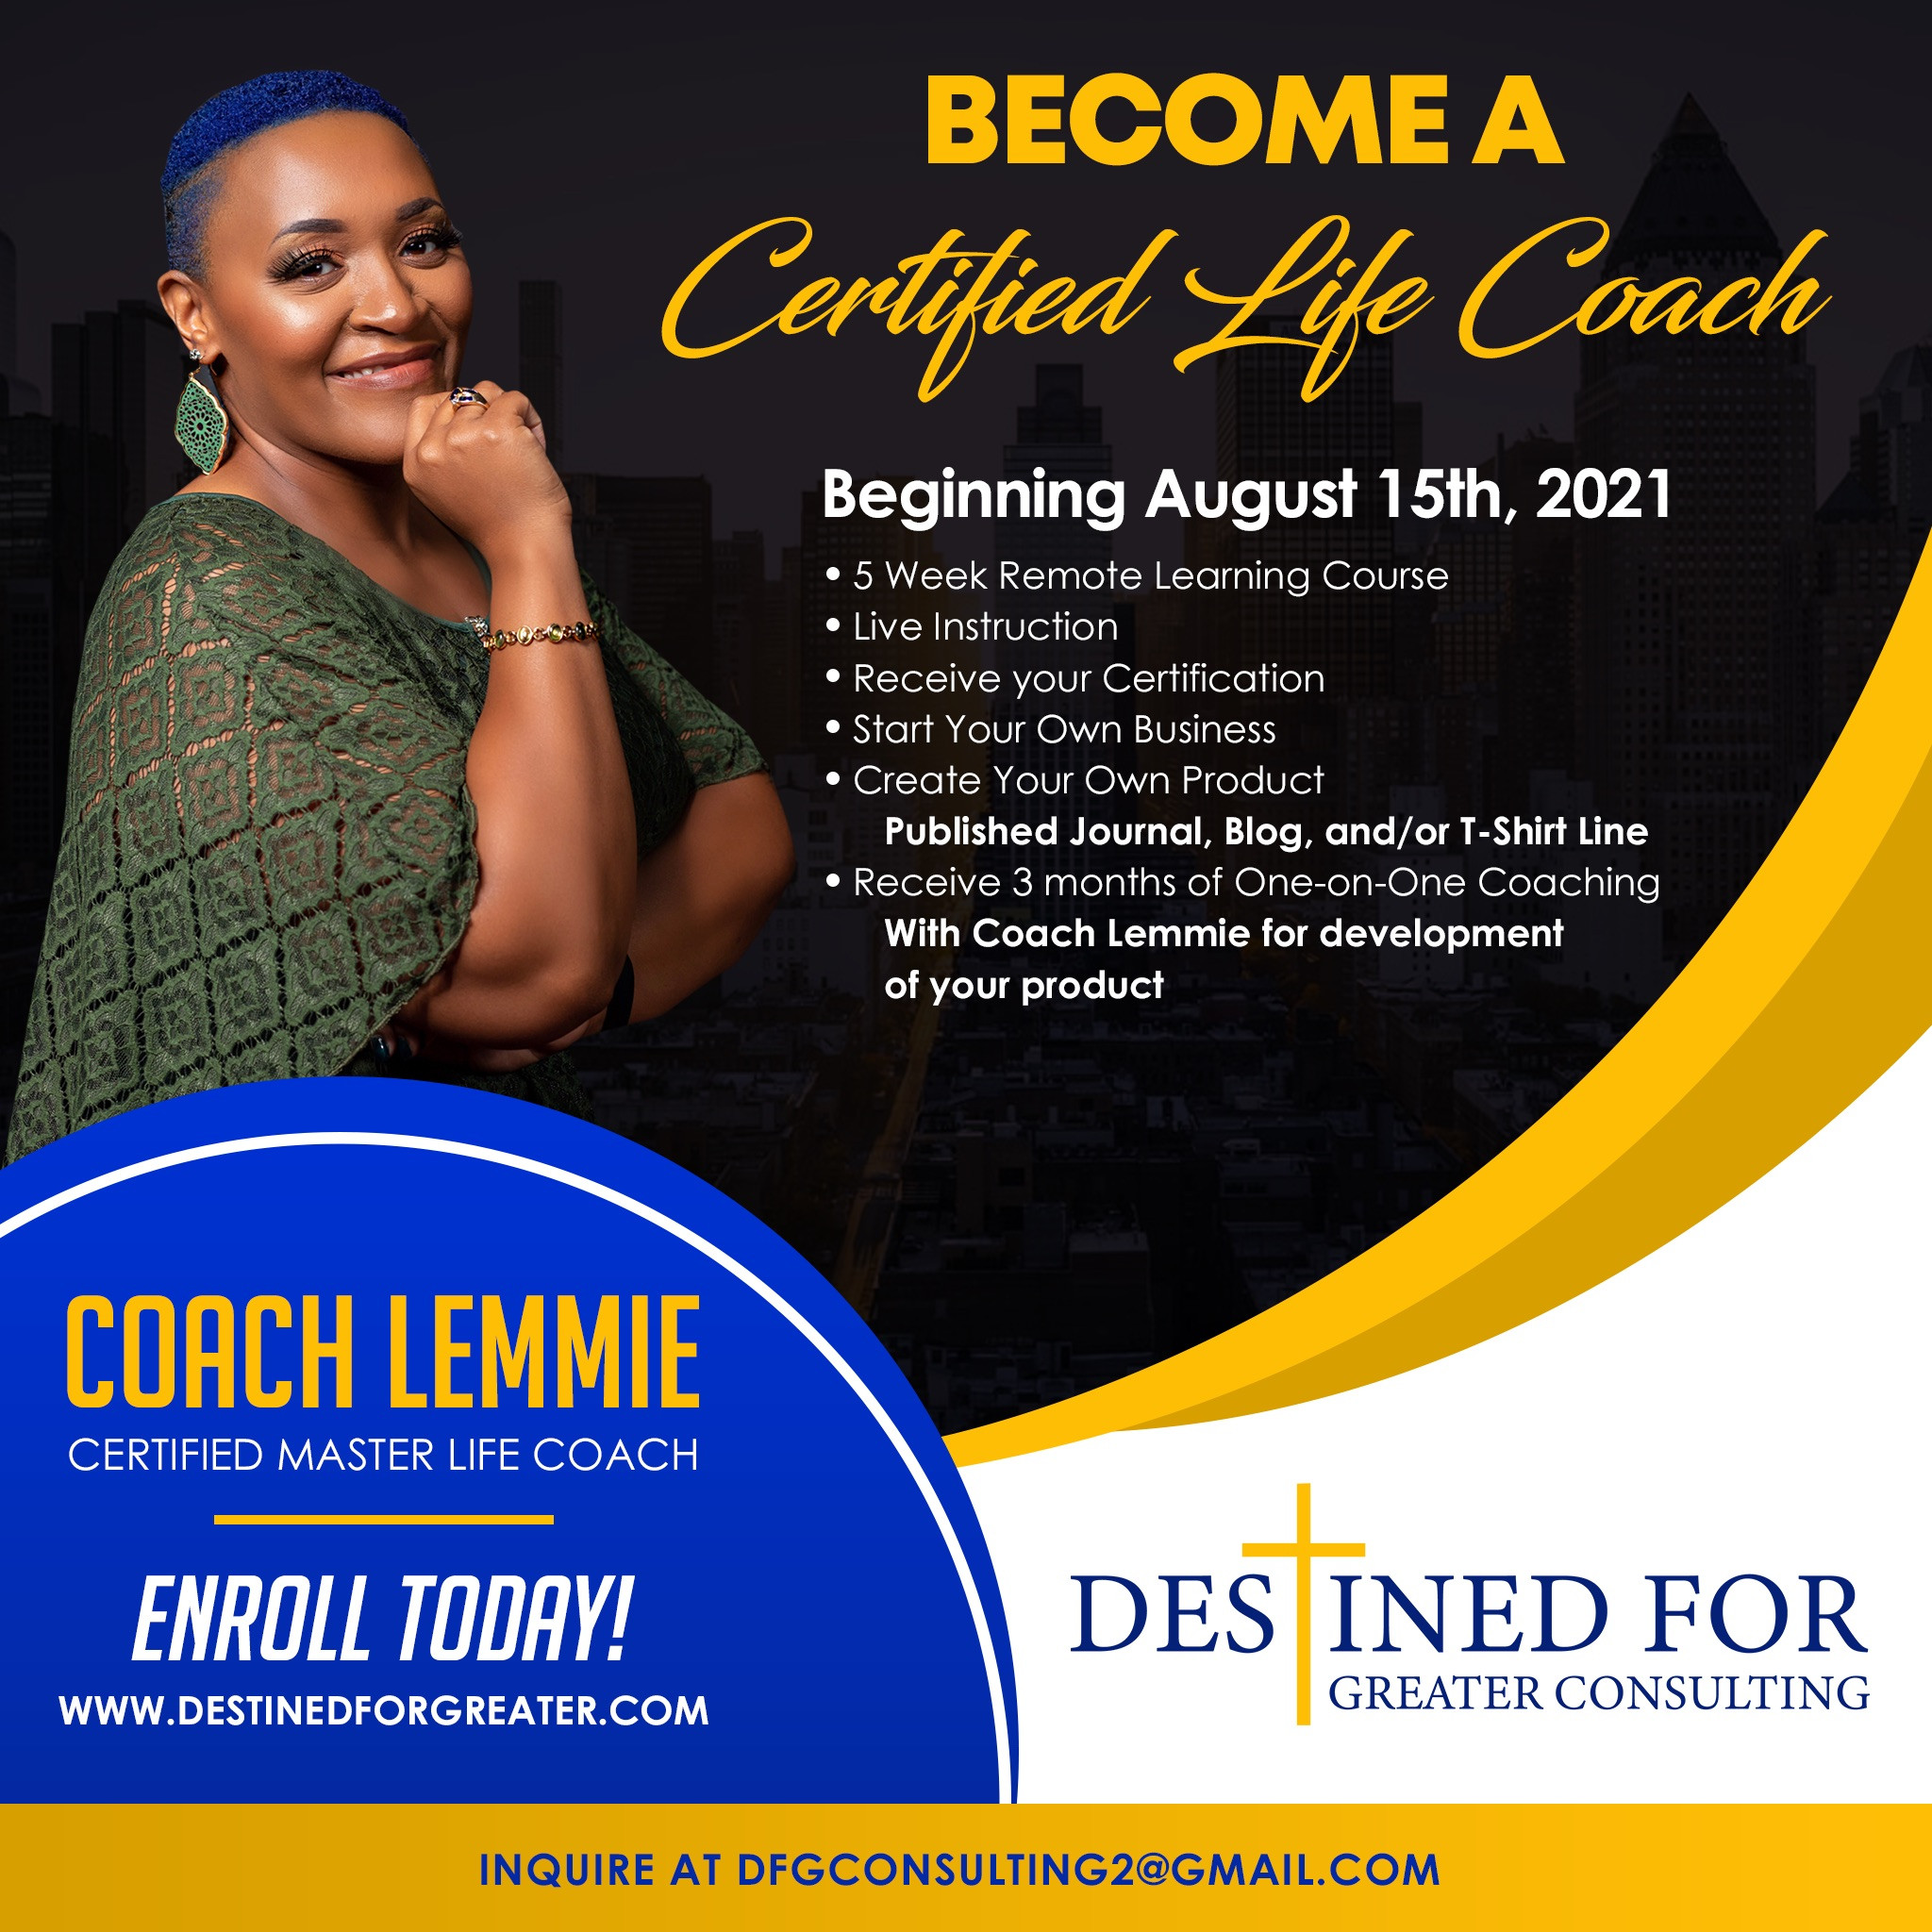 Become a Certified Life Coach